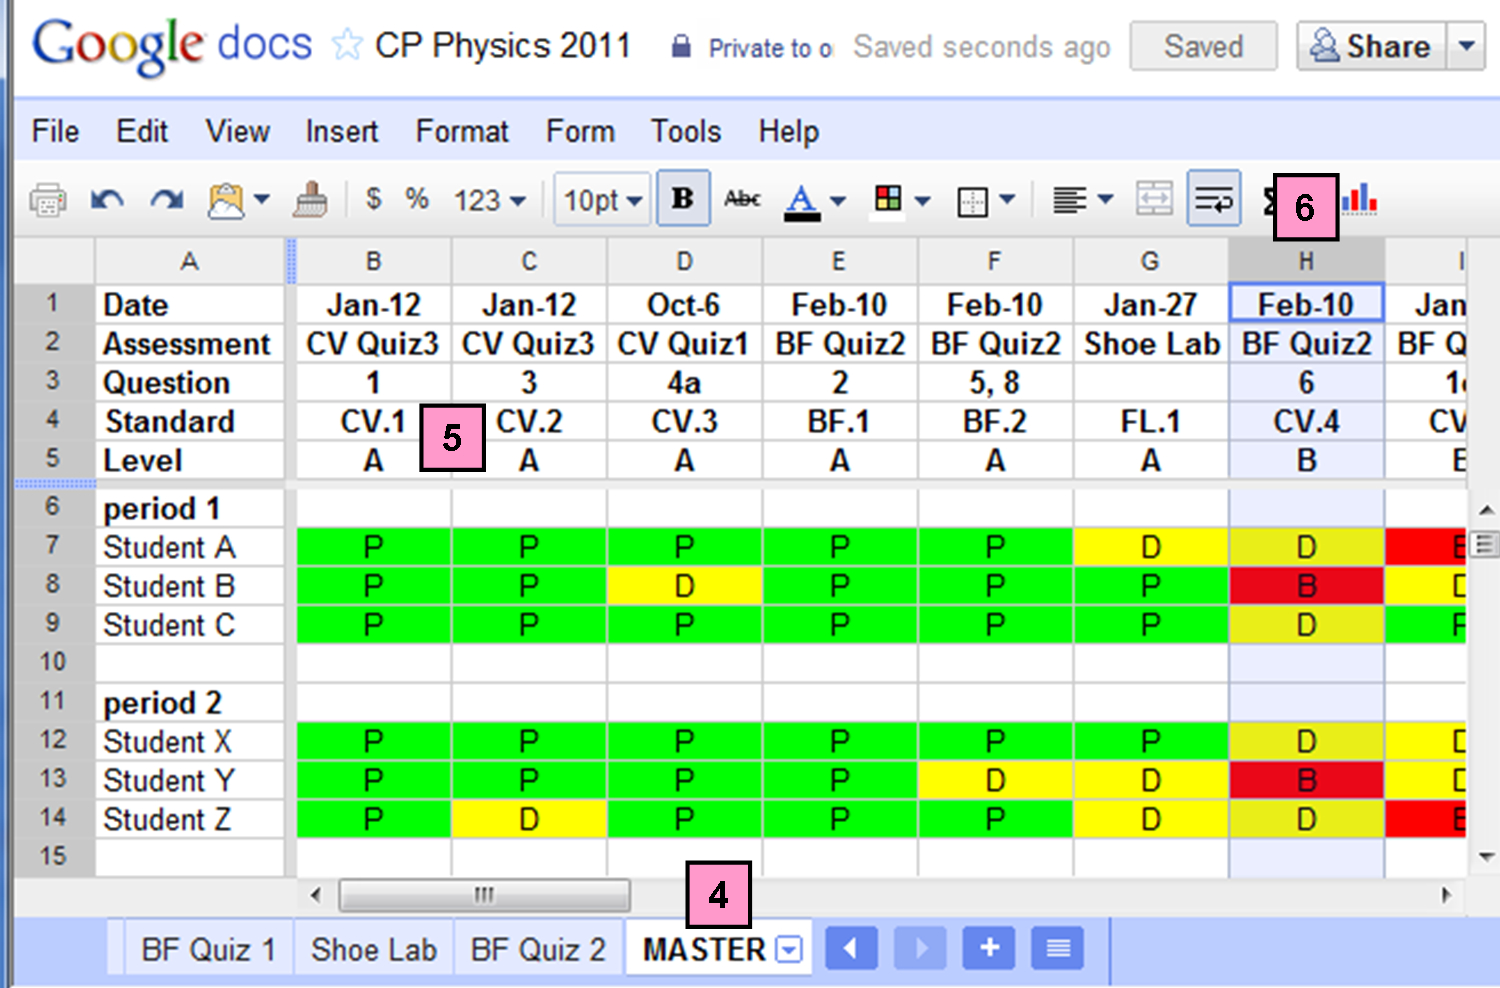 Excel Spreadsheet To Track Student Progress Intended For